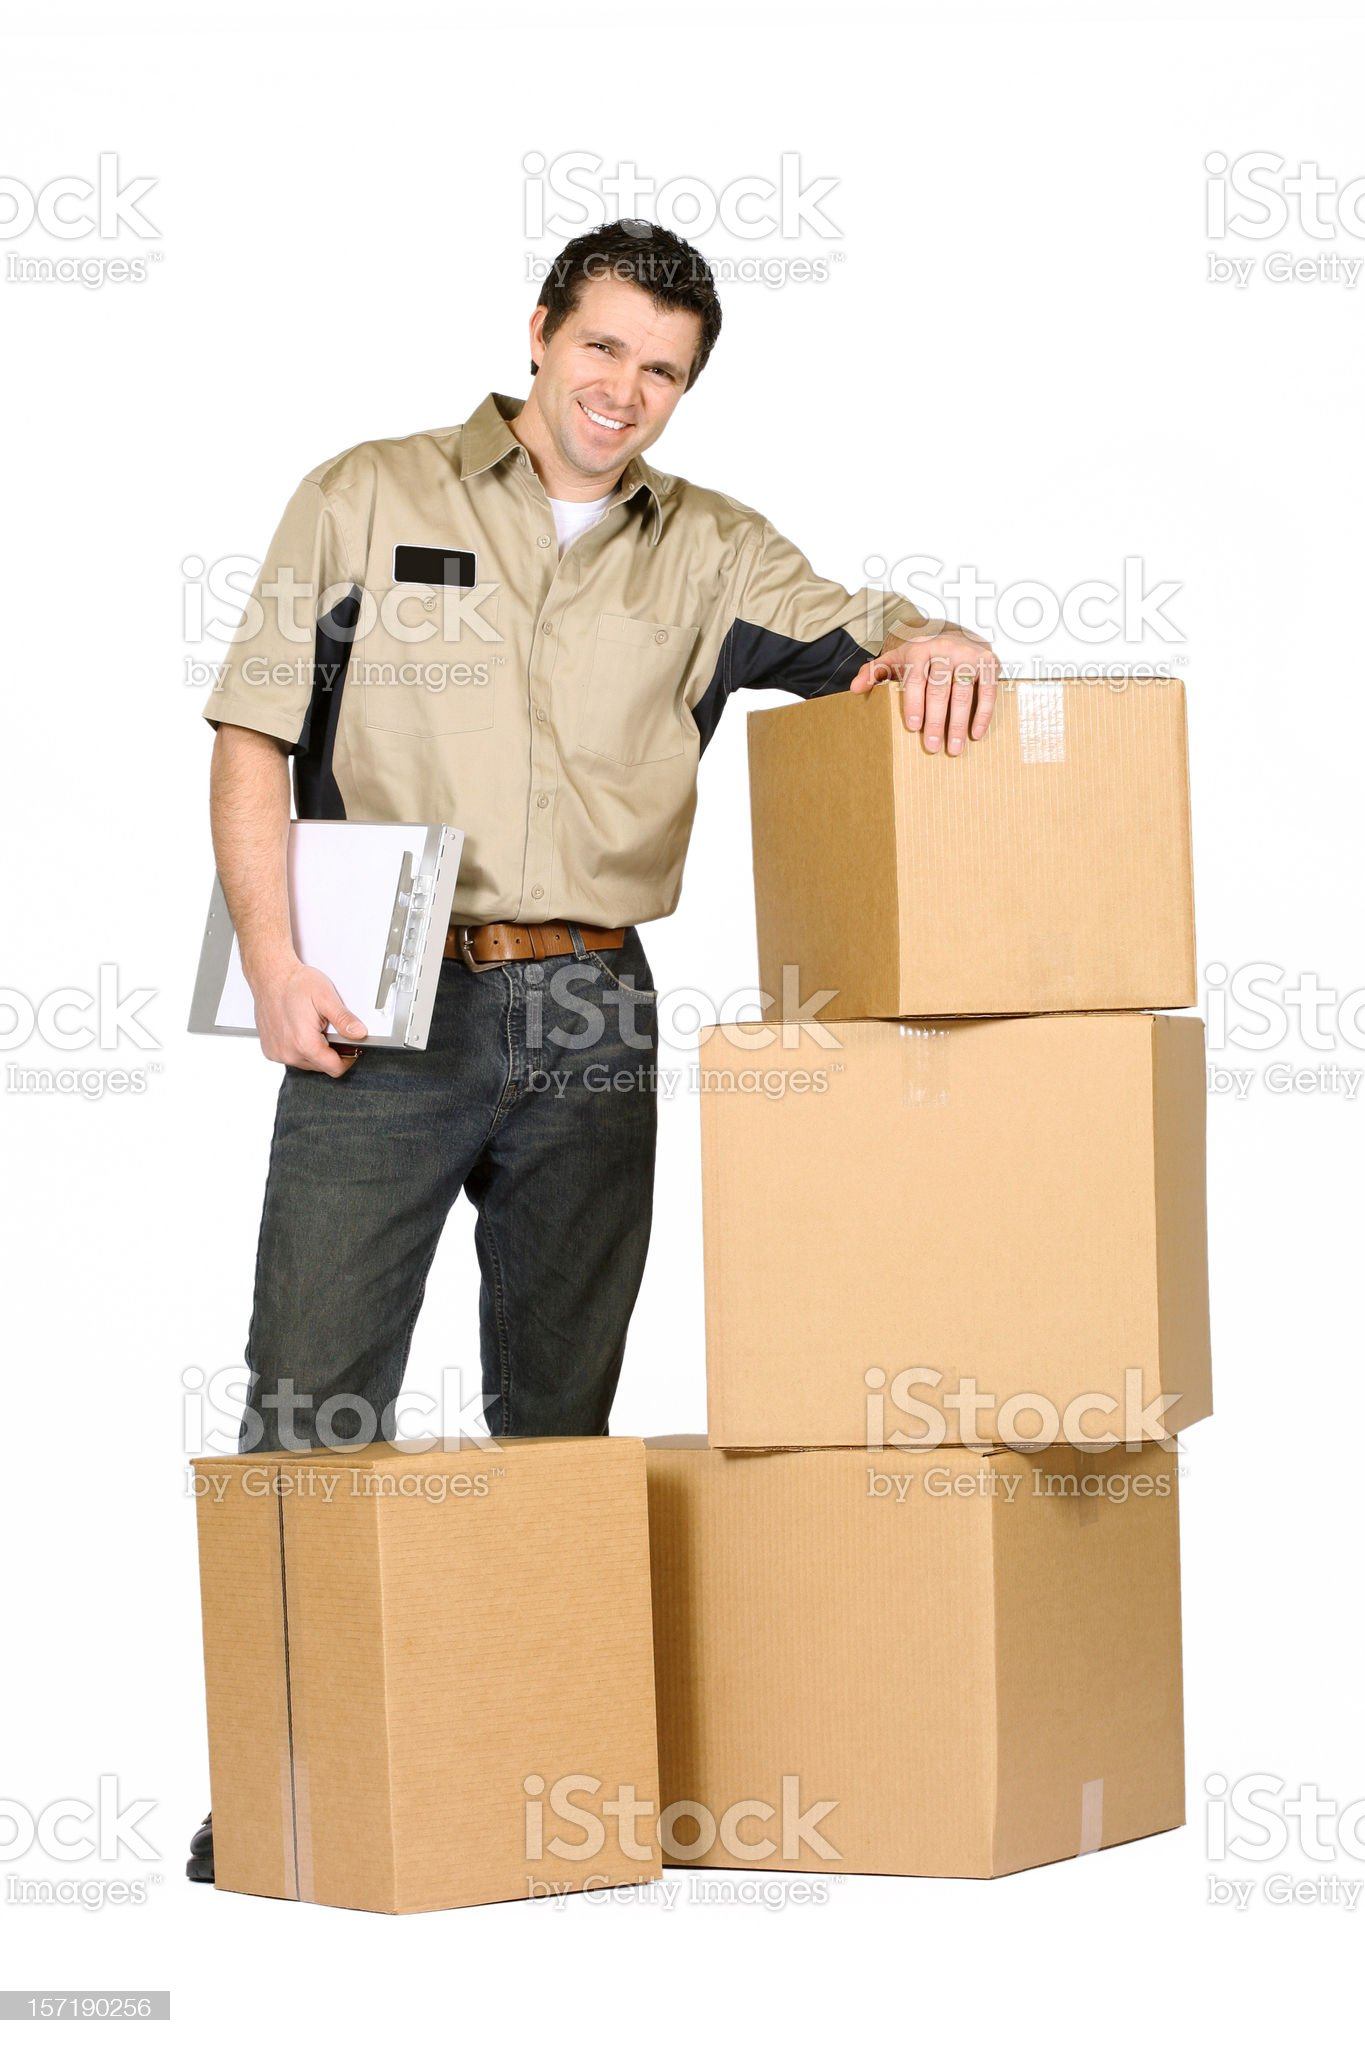 Deliveryman royalty-free stock photo